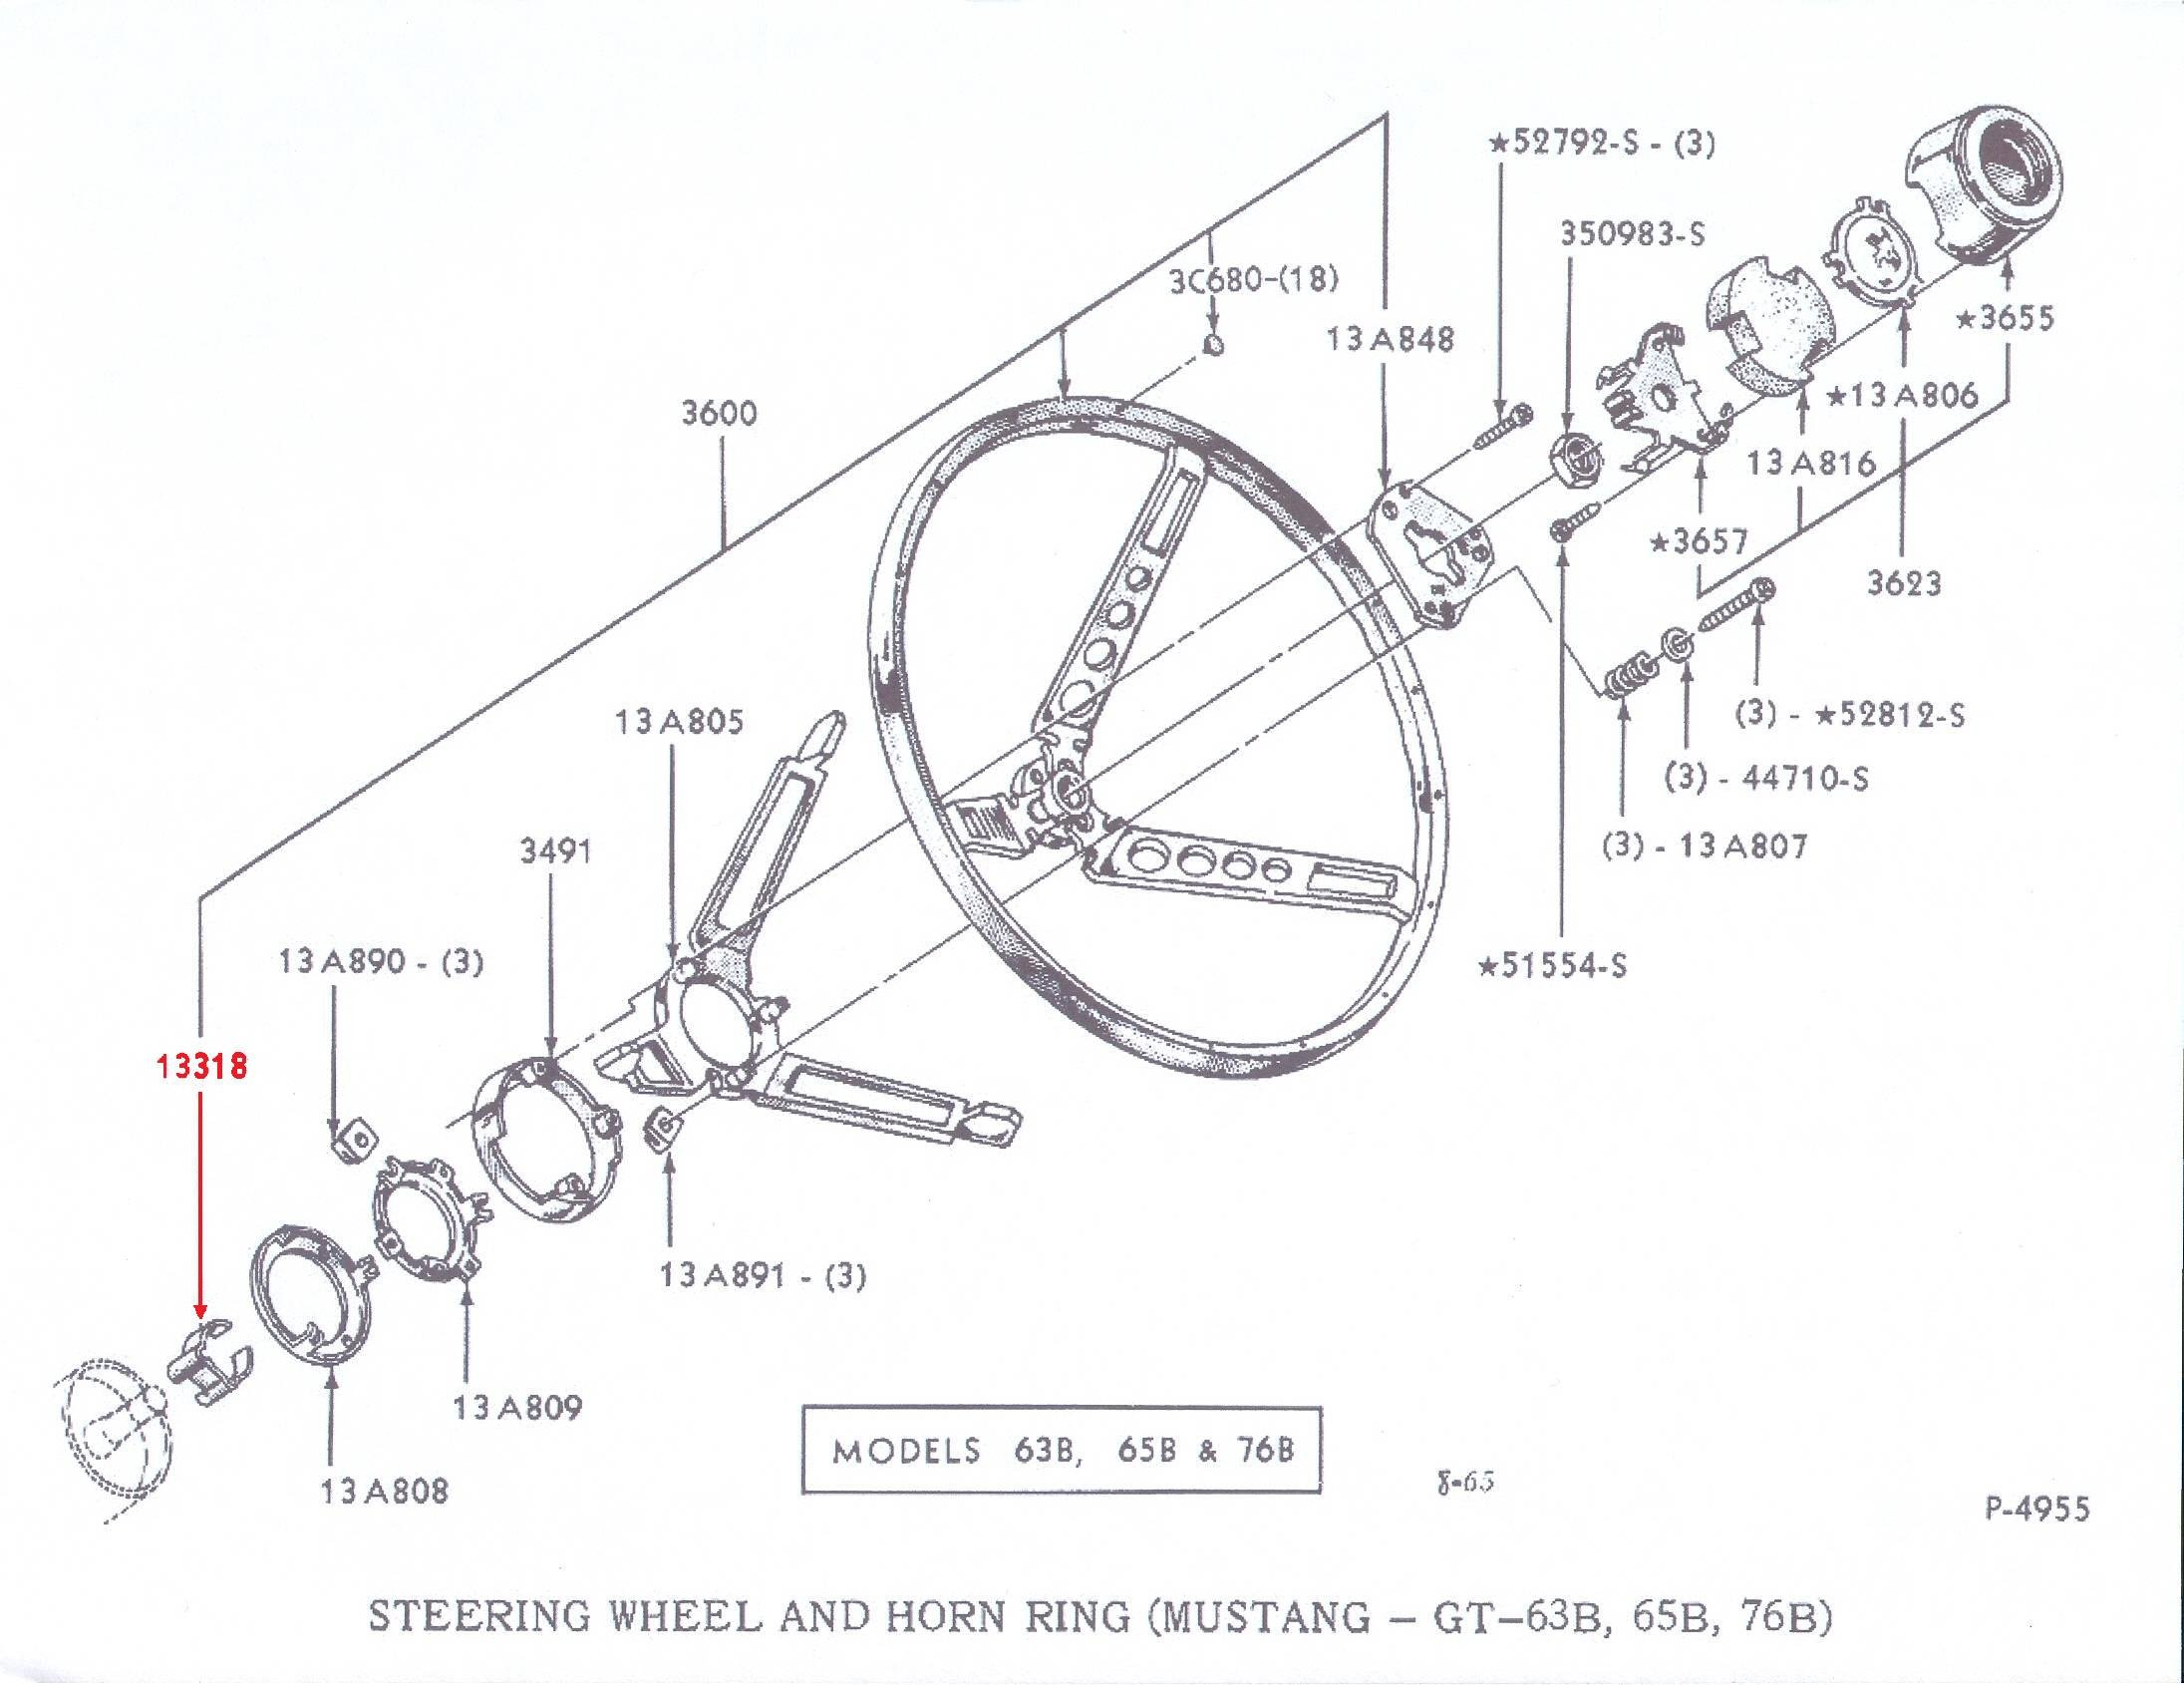 1967 Mustang Manual Steering Components Diagram Trusted Wiring Ford Shelby 67 Auto Today U2022 Body Parts